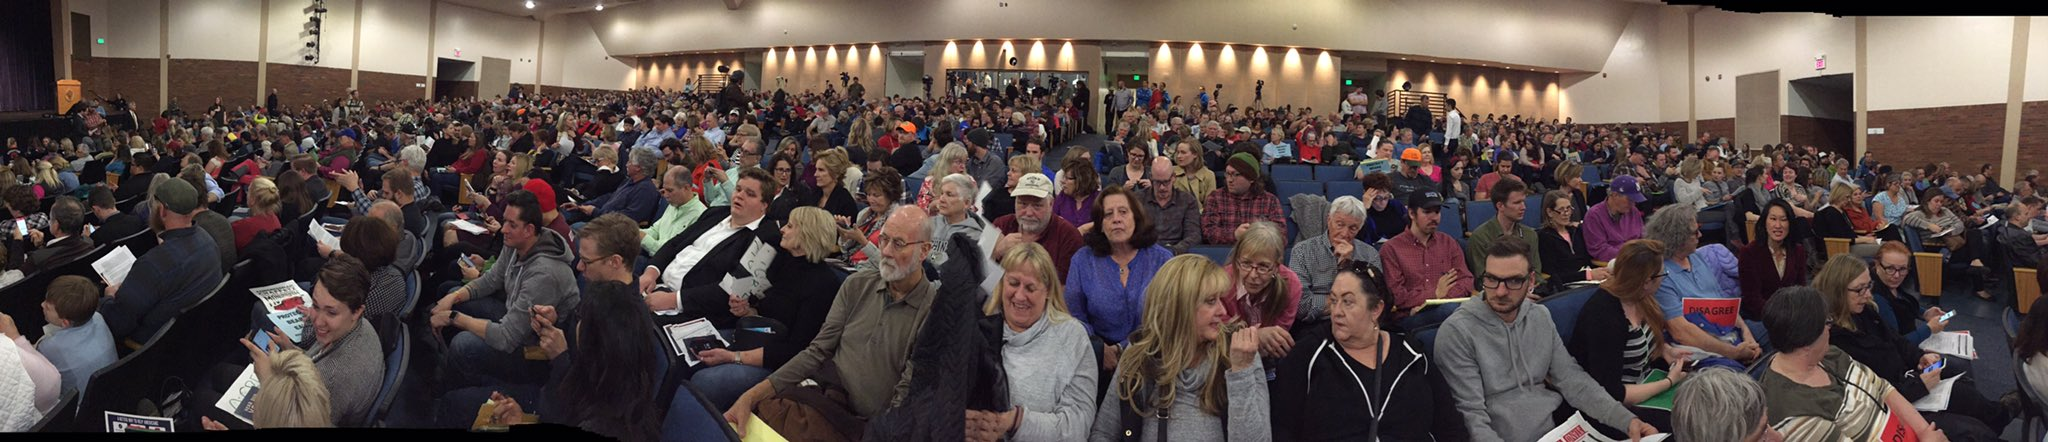 This was the room about 15 minutes ago -- it's stuffed to the gills now. And getting loud... #chaffetztownhall https://t.co/97DfAE5I9L